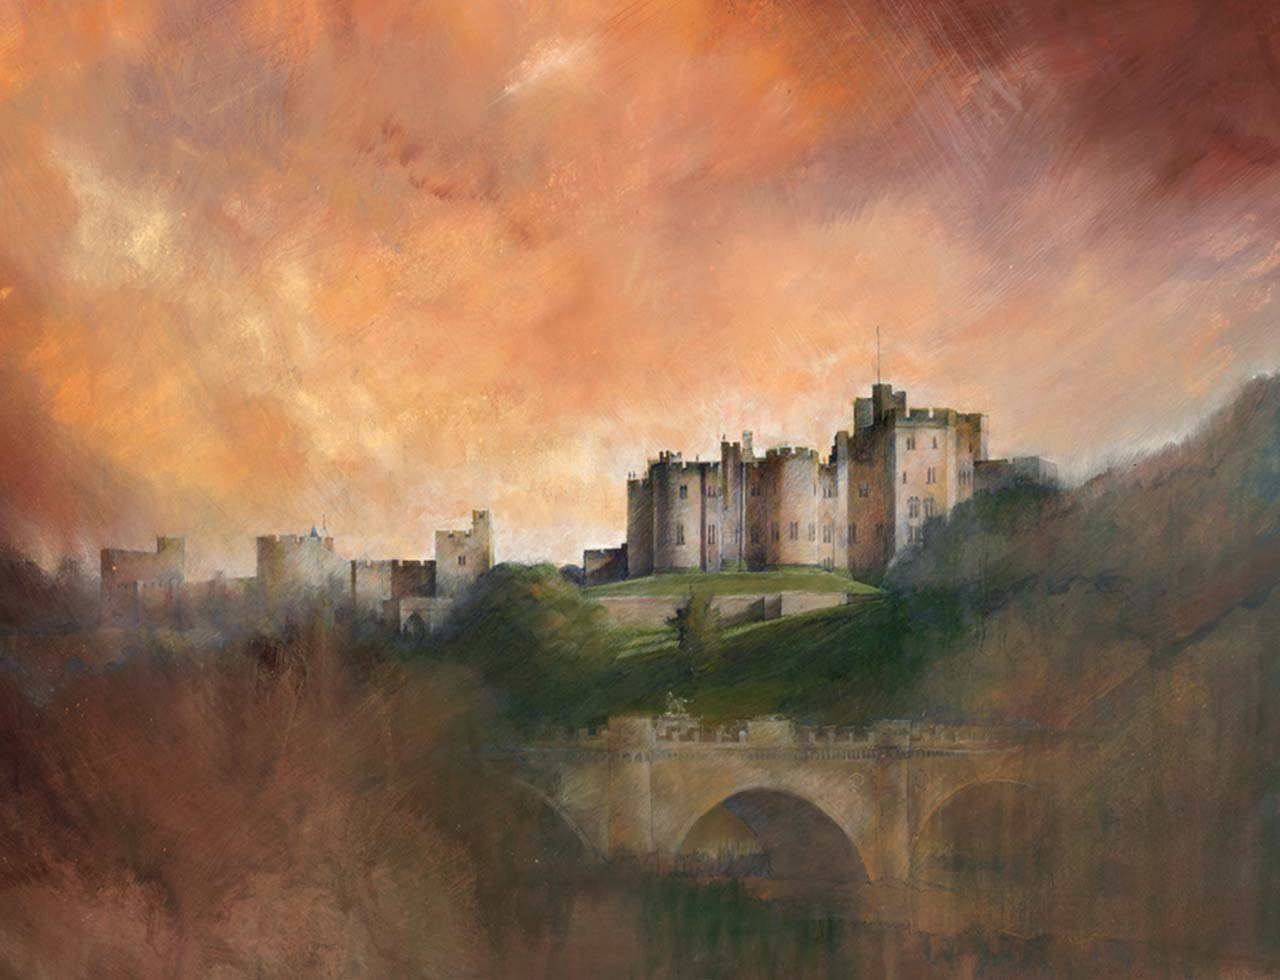 Painting of Alnwick Castle, Northumberland at sunset